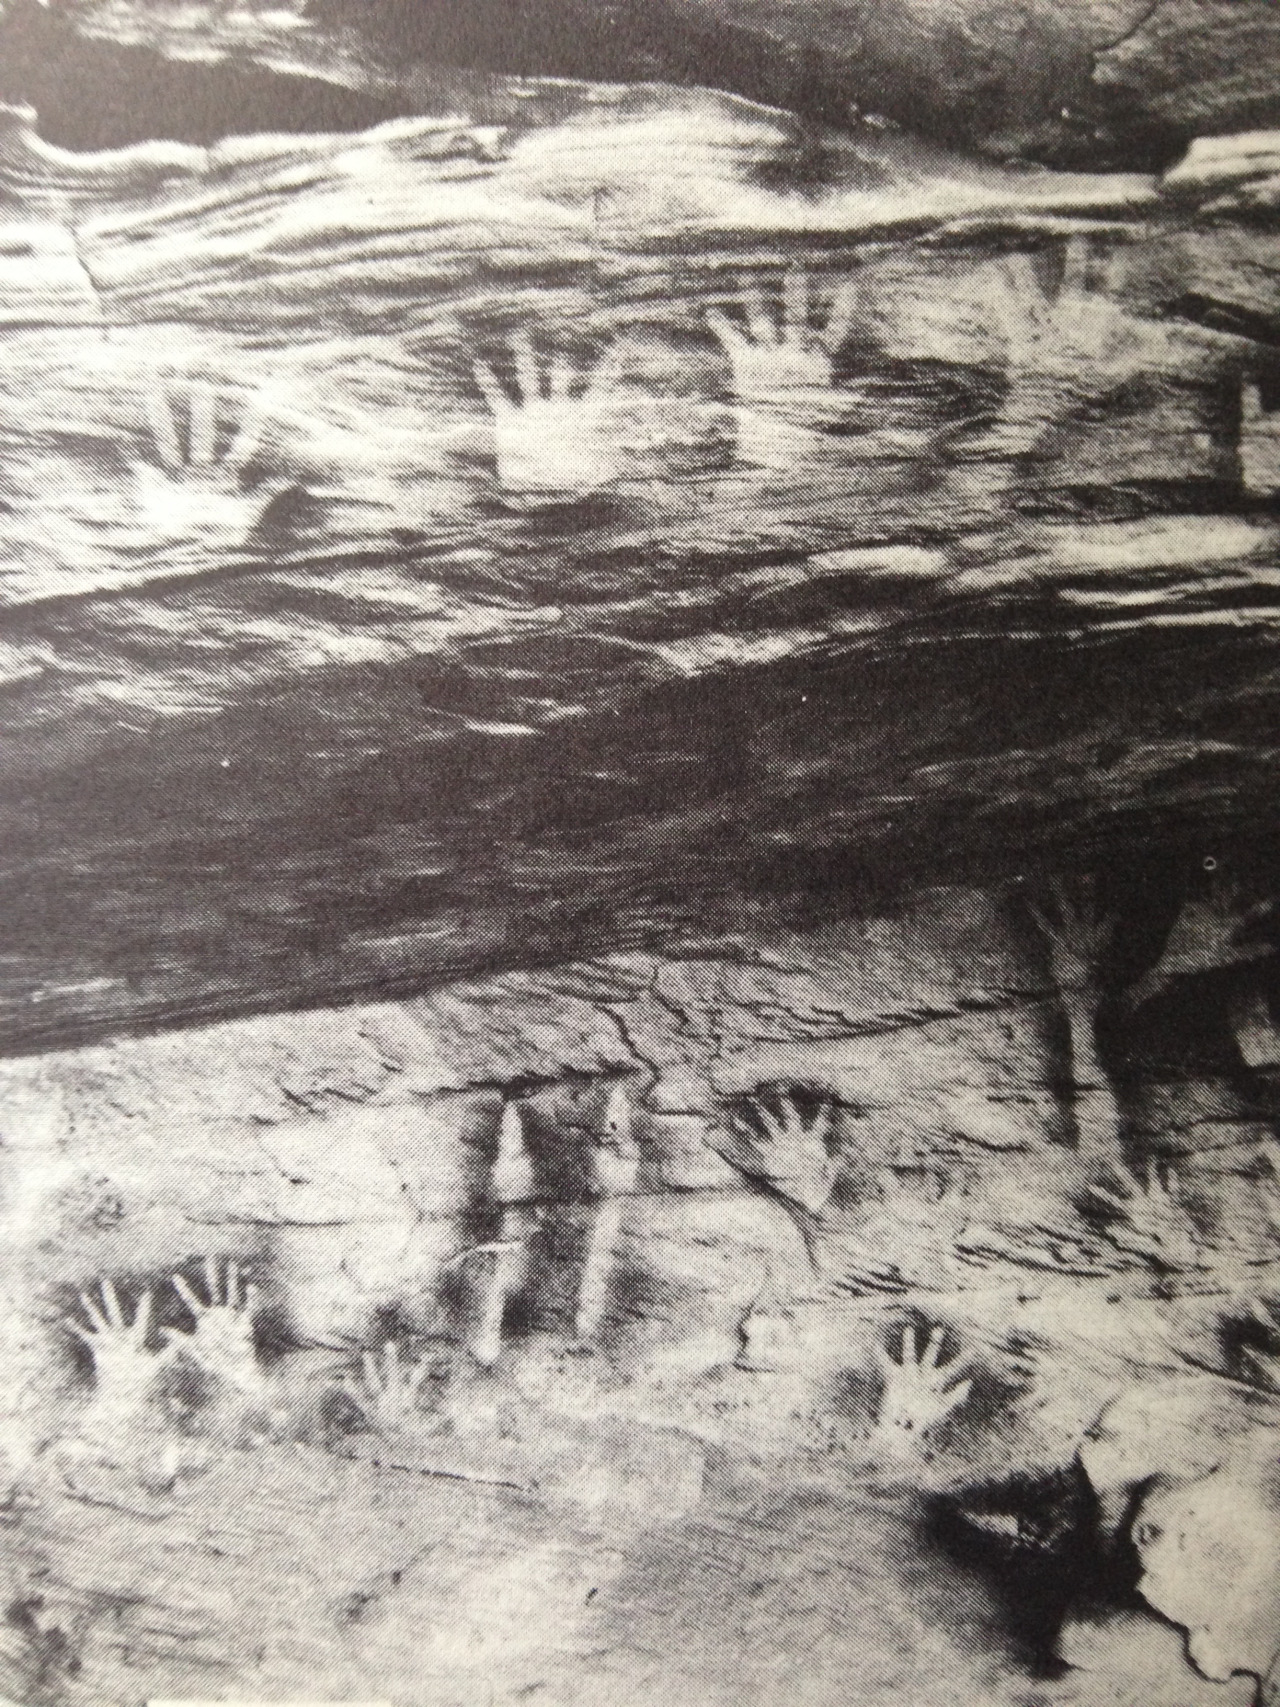 negatives of human hands from rock shelter at Toombs, New South Wales.